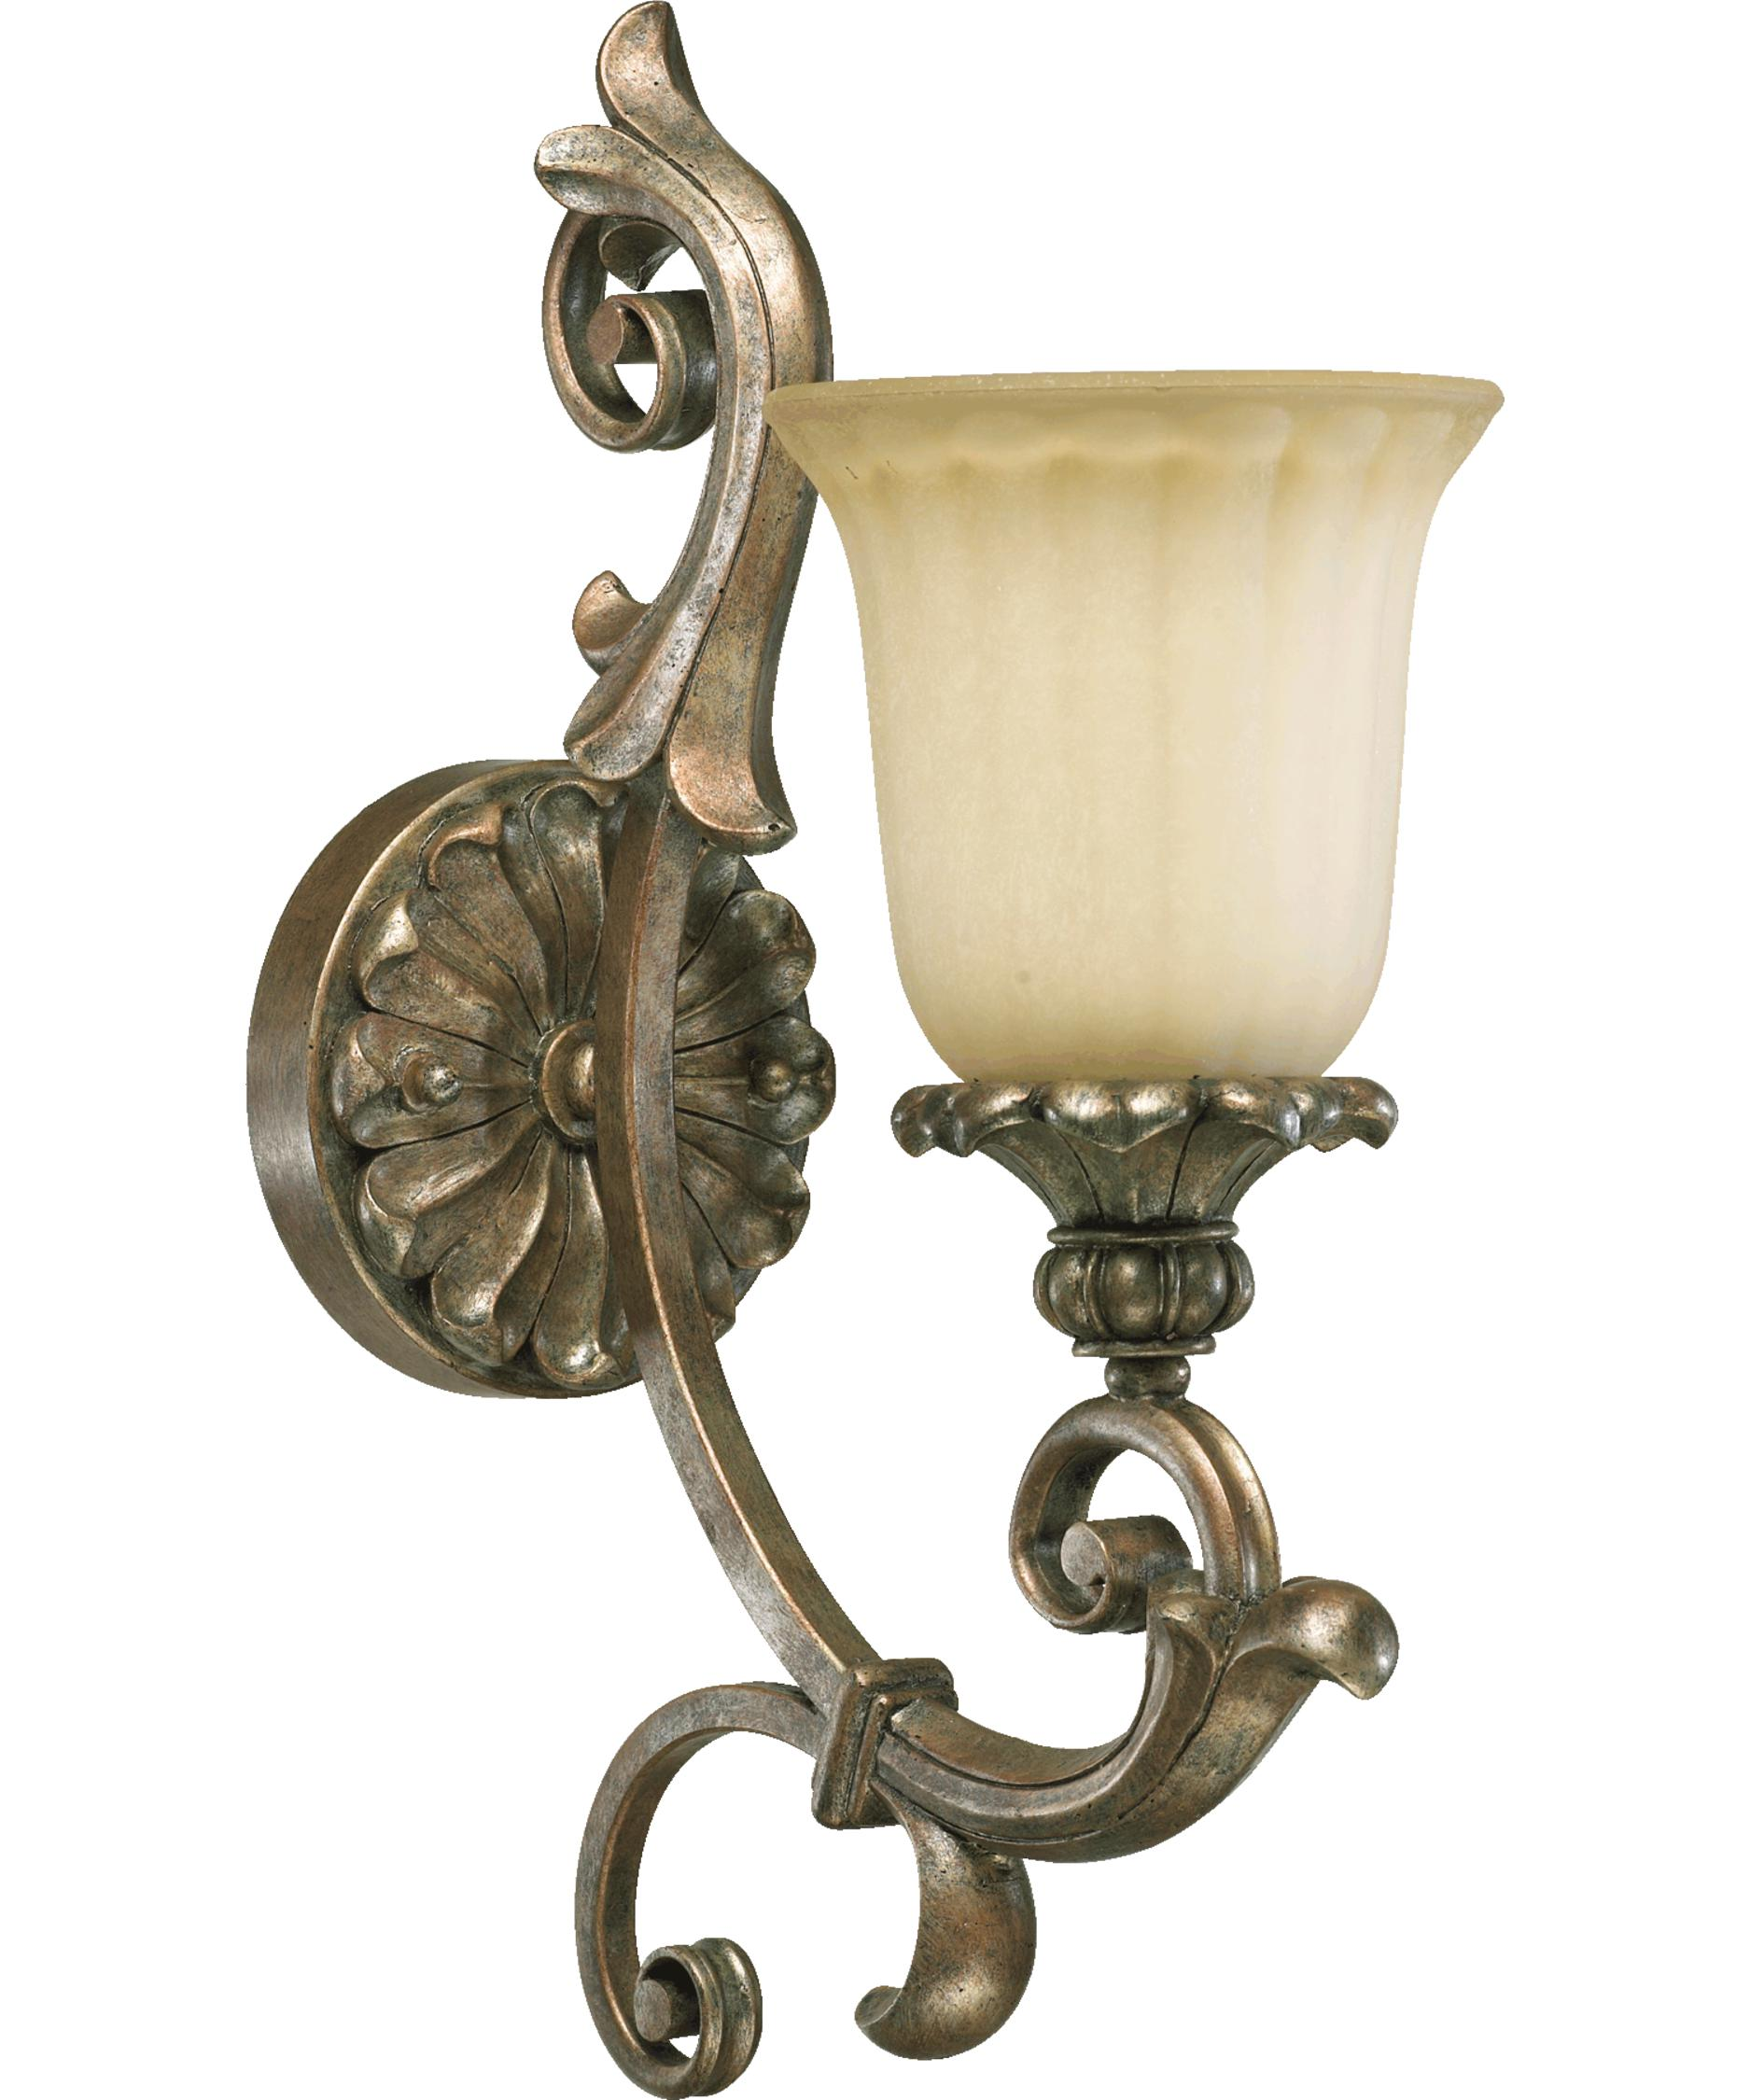 Quorum Bathroom Lighting quorum international 5400-1 barcelona 6 inch wide wall sconce